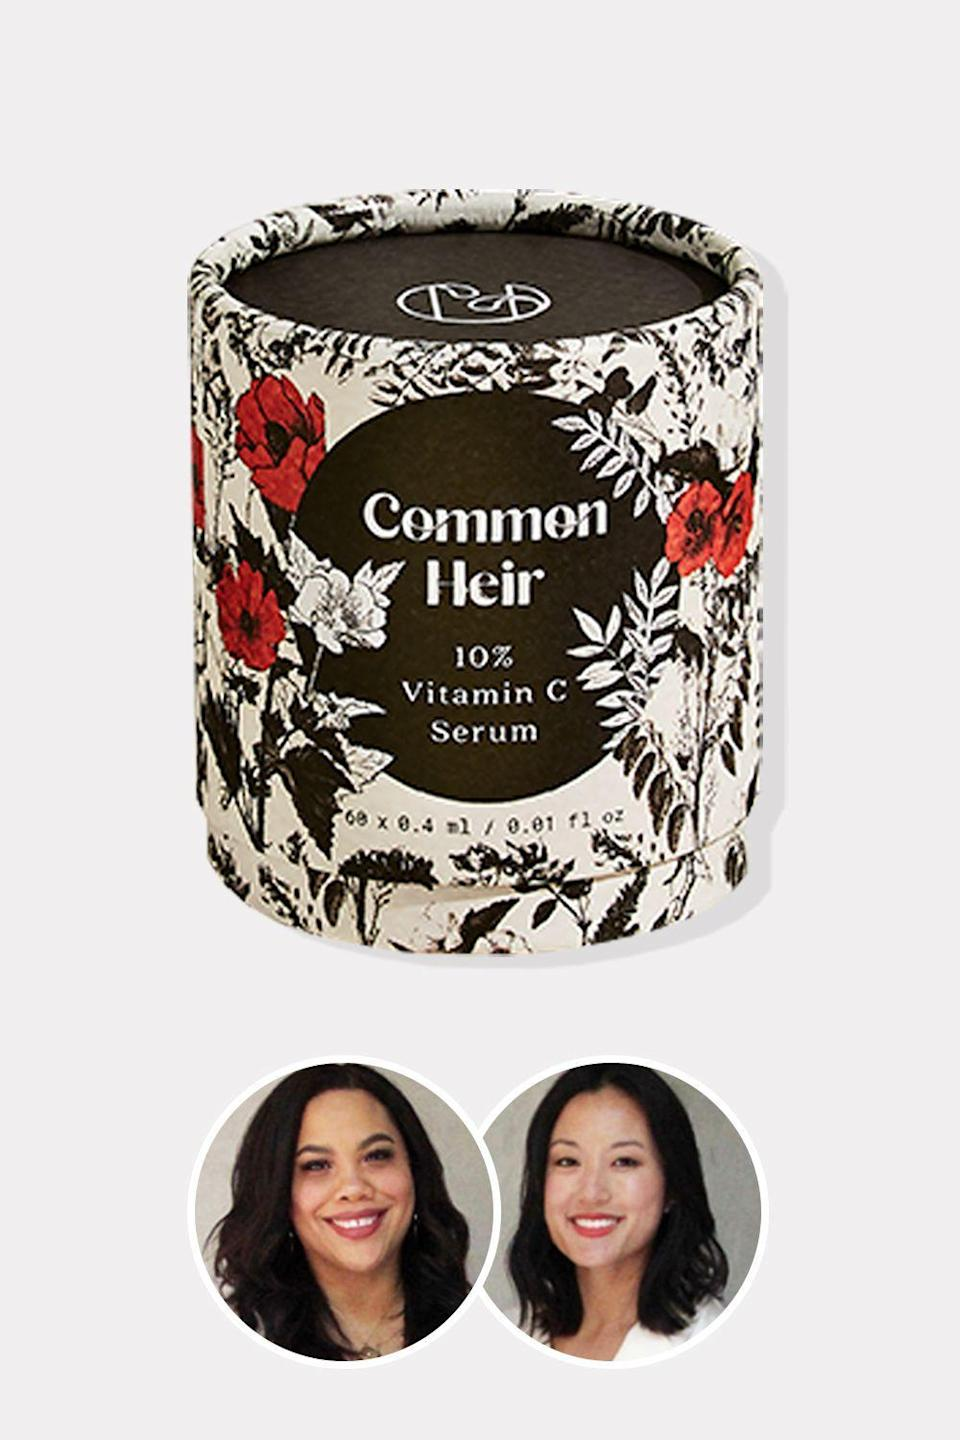 """<p><strong>Common Heir</strong></p><p>commonheir.com</p><p><strong>$88.00</strong></p><p><a href=""""https://go.redirectingat.com?id=74968X1596630&url=https%3A%2F%2Fcommonheir.com%2Fproducts%2Fvitamin-c-serum&sref=https%3A%2F%2Fwww.oprahdaily.com%2Fbeauty%2Fskin-makeup%2Fg36454382%2Fasian-beauty-brands%2F"""" rel=""""nofollow noopener"""" target=""""_blank"""" data-ylk=""""slk:Shop Now"""" class=""""link rapid-noclick-resp"""">Shop Now</a></p><p>Vitamin C is a known anti-ager that can brighten your complexion, fade hyperpigmentation, and stimulate the production of skin-plumping collagen. The problem? It can be tricky to formulate with since it breaks down easily. Common Heir founders Cary Lin and Angela Ubias have solved that problem, packing 10% vitamin C into a vegan, biodegradable single-use capsule that hits skin as fresh as citrus from a tree. It's a genius workaround—and the brand's commitment to sustainability makes it even smarter.</p>"""